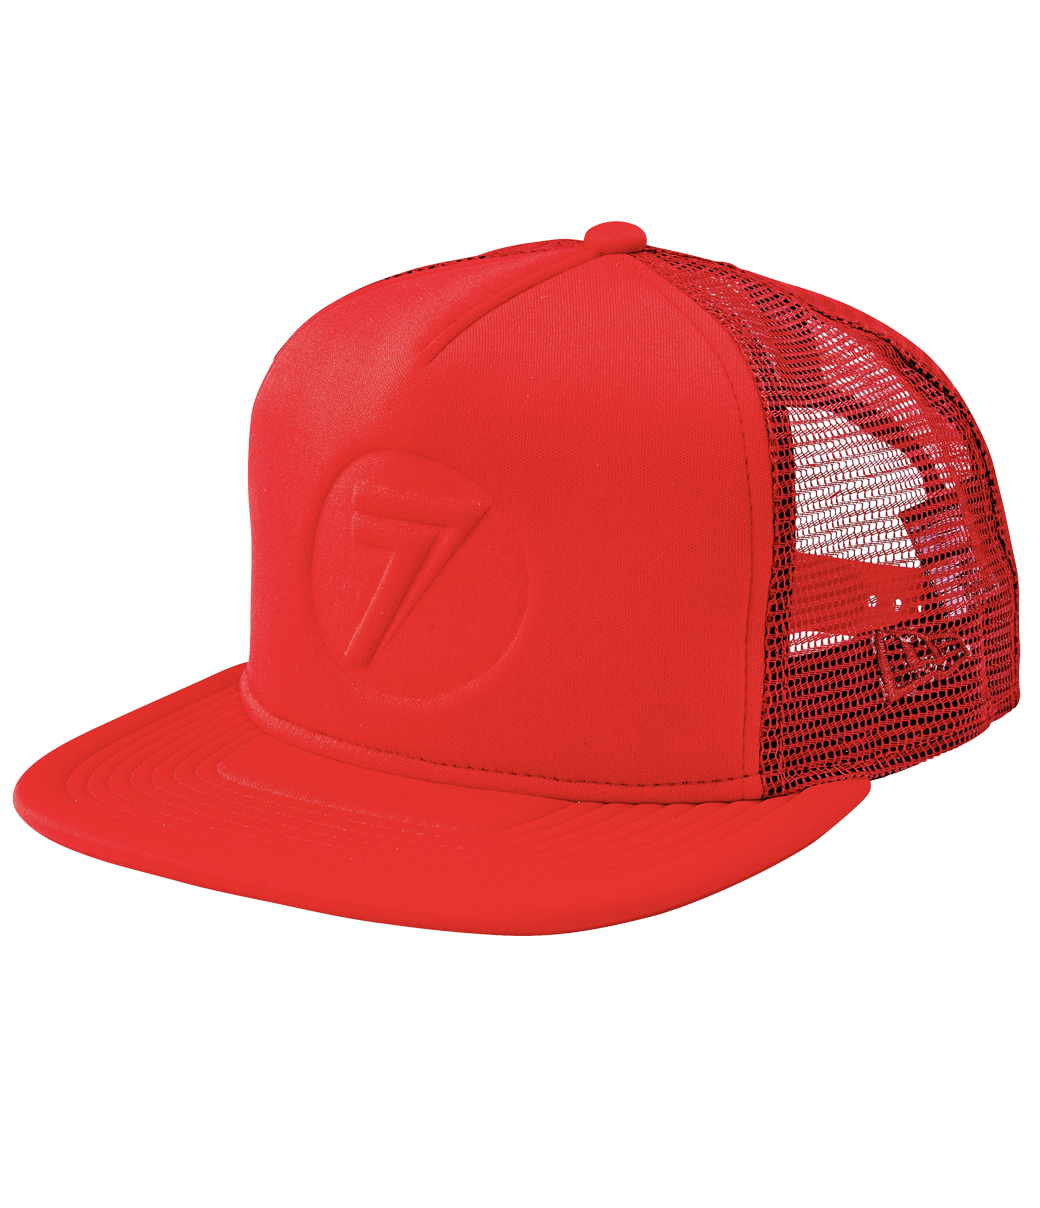 STAMP IT Hat - Hot Red